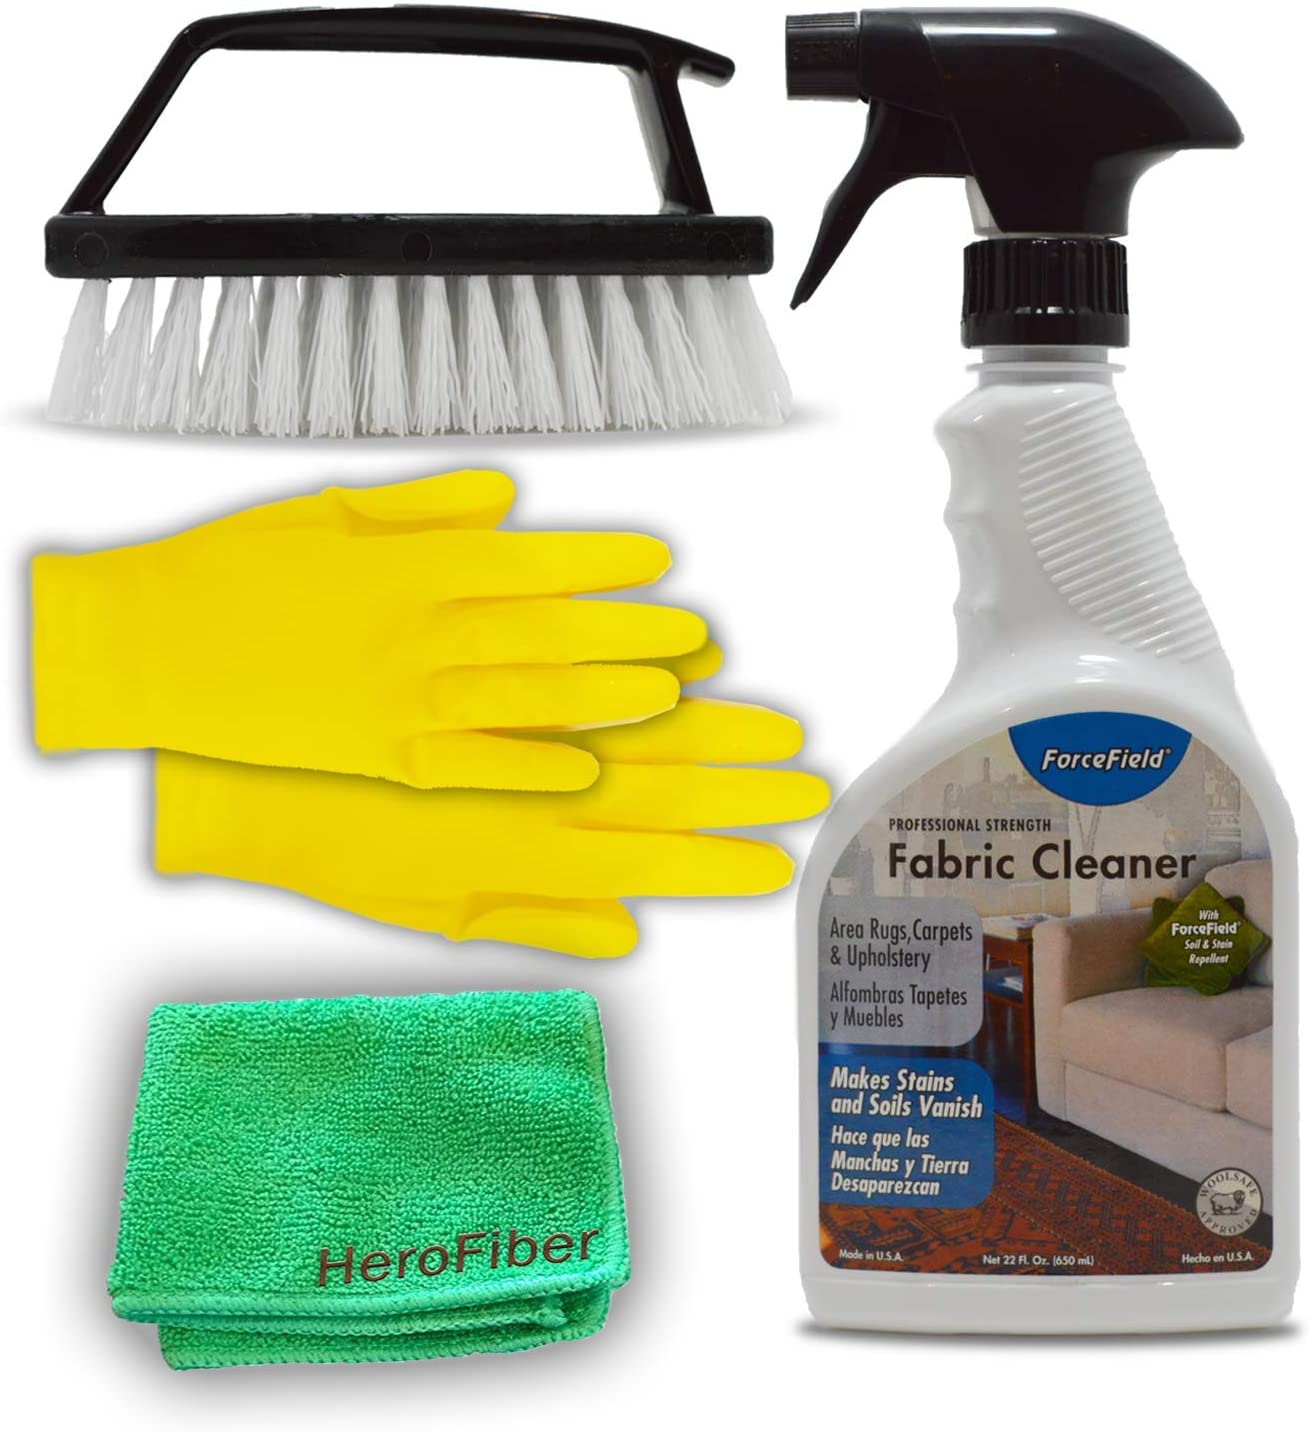 ForceField Fabric Cleaner Kit: 22 Oz Professional Strength Force Field Carpet and Upholstery Cleaning Spray, Handheld Scrub Brush with Handle Detailing, Microfiber Cloth, Yellow Rubber Gloves.